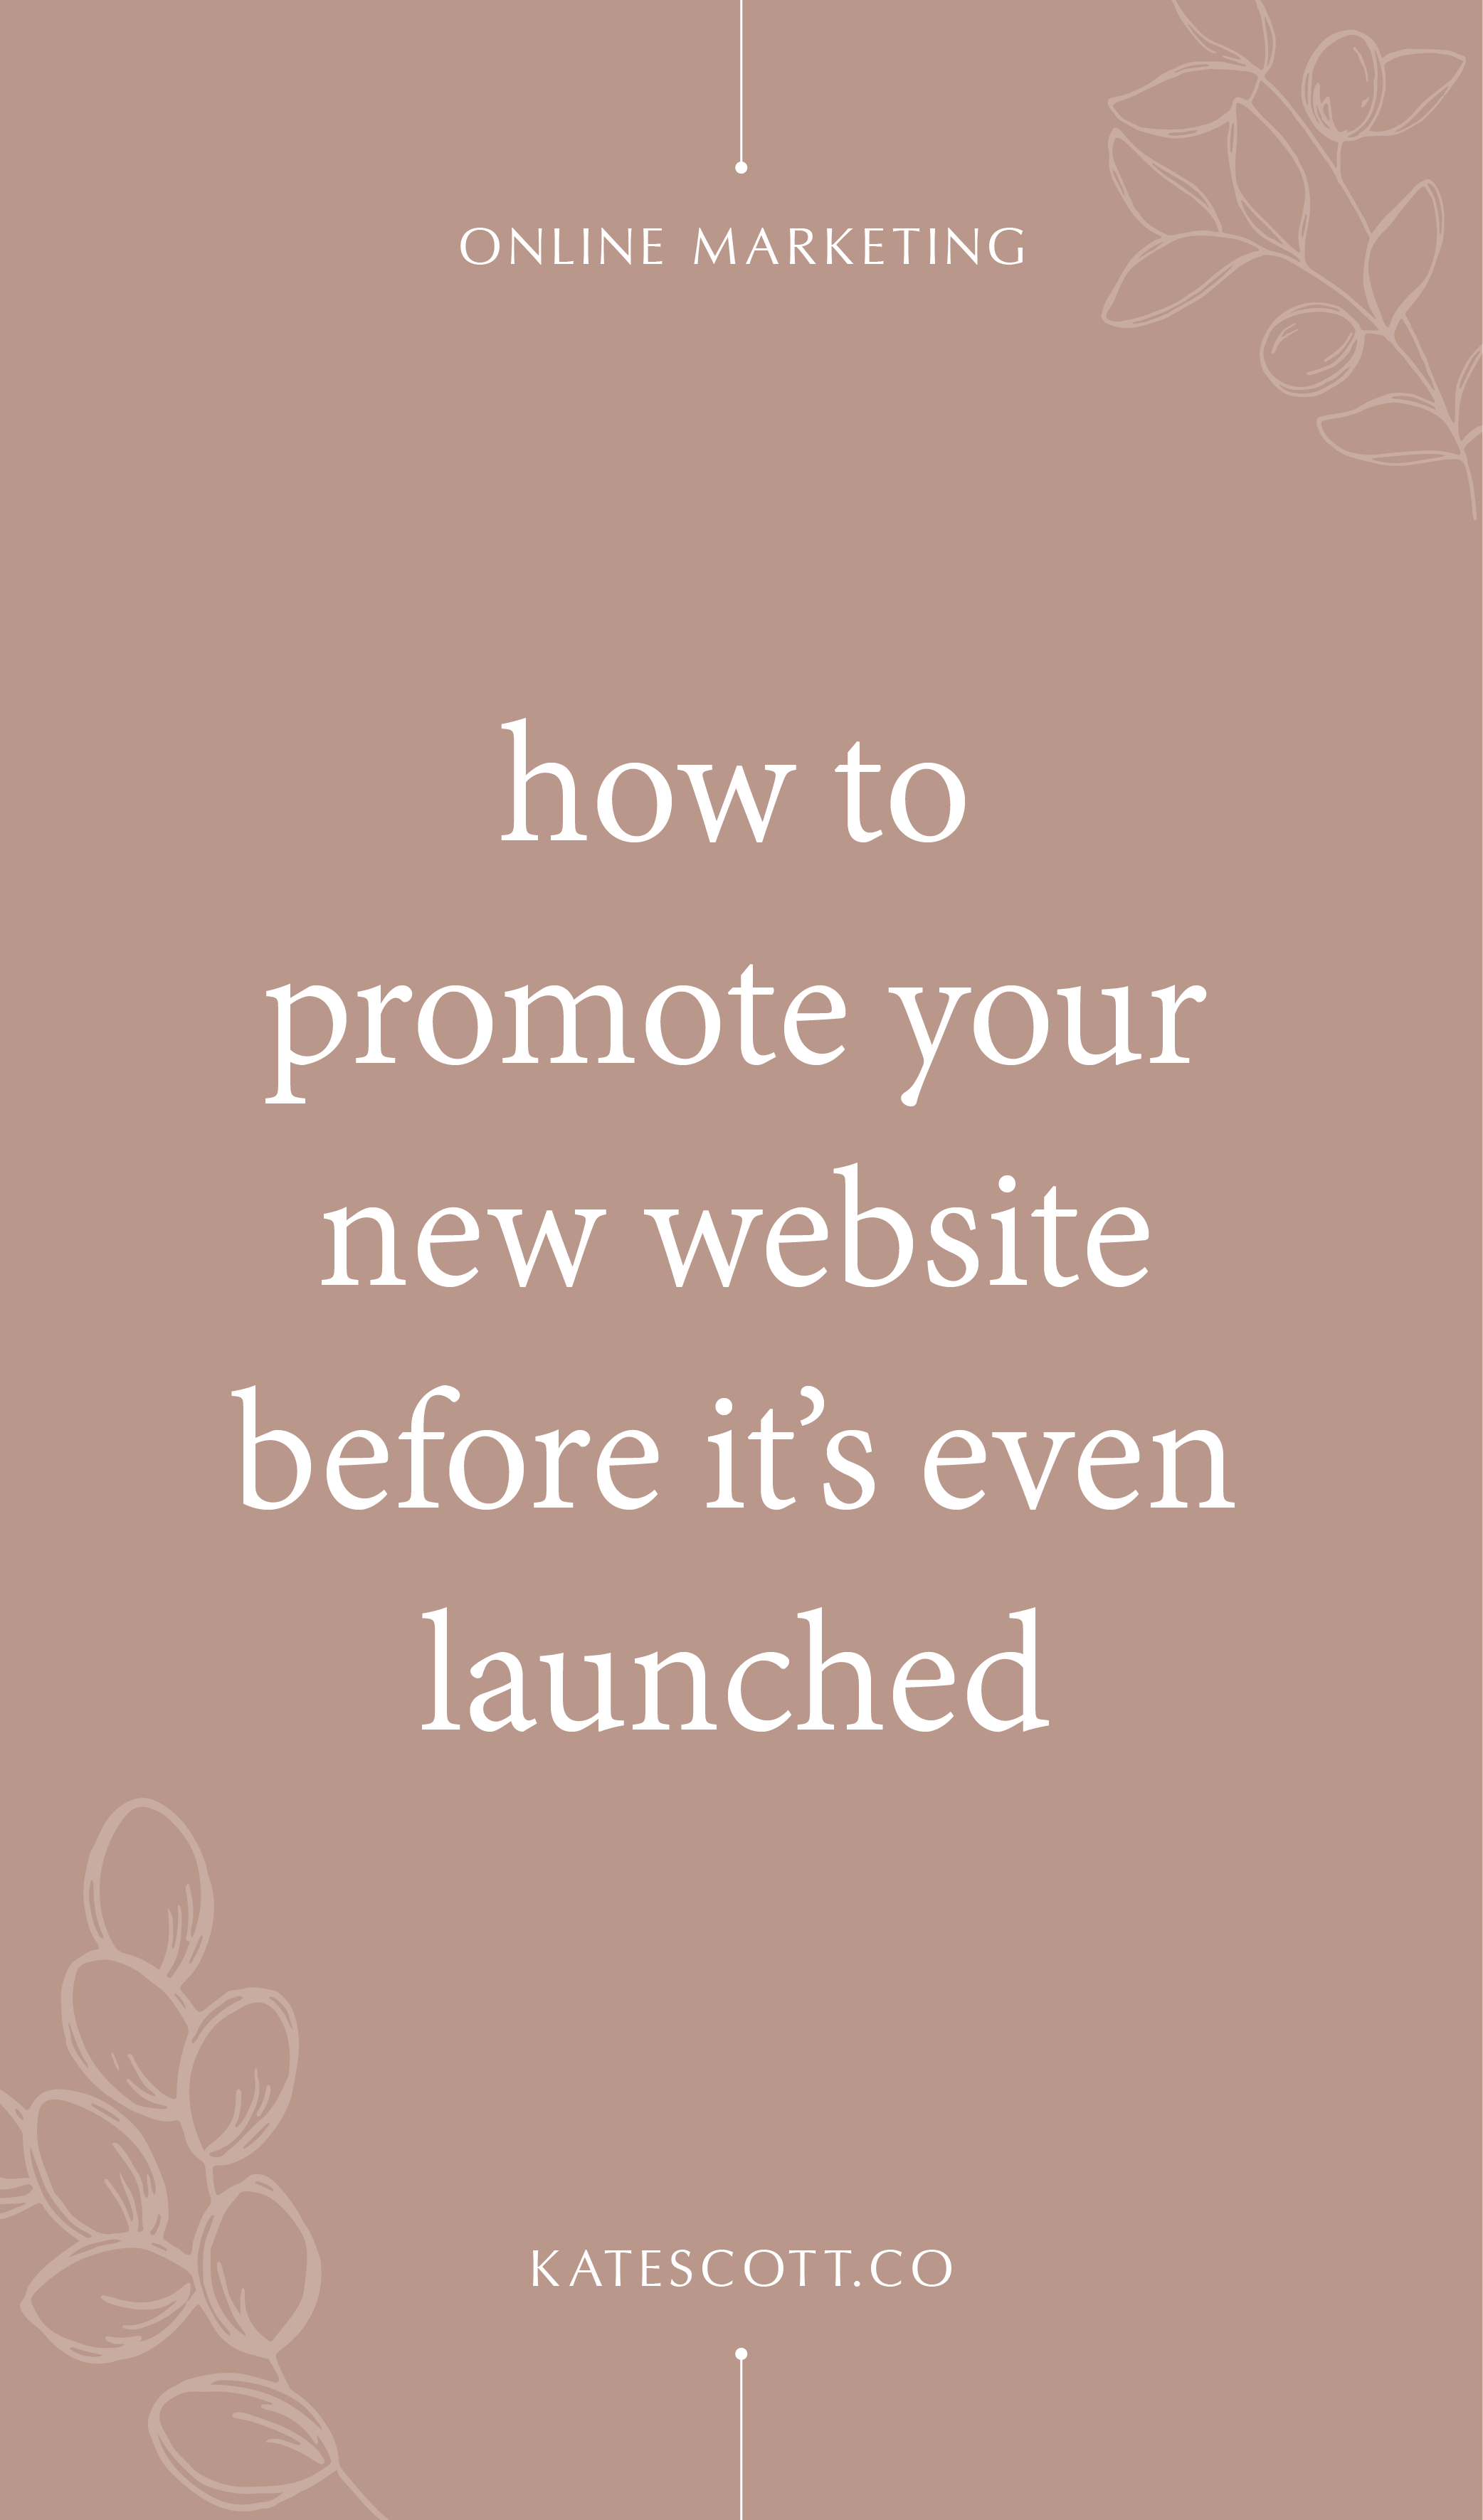 Want to build buzz before your big website launch? This pre-launch website marketing strategy will help you build momentum and grow your business faster out of the gate! | Social Media Marketing | Social Media Platforms | Website Marketing Ideas | Website Marketing Tips | Pinterest Marketing | Instagram Marketing Strategy | Website Marketing Tips | Website Marketing Strategy | #socialmedia #digitalmarketing #entrepreneur